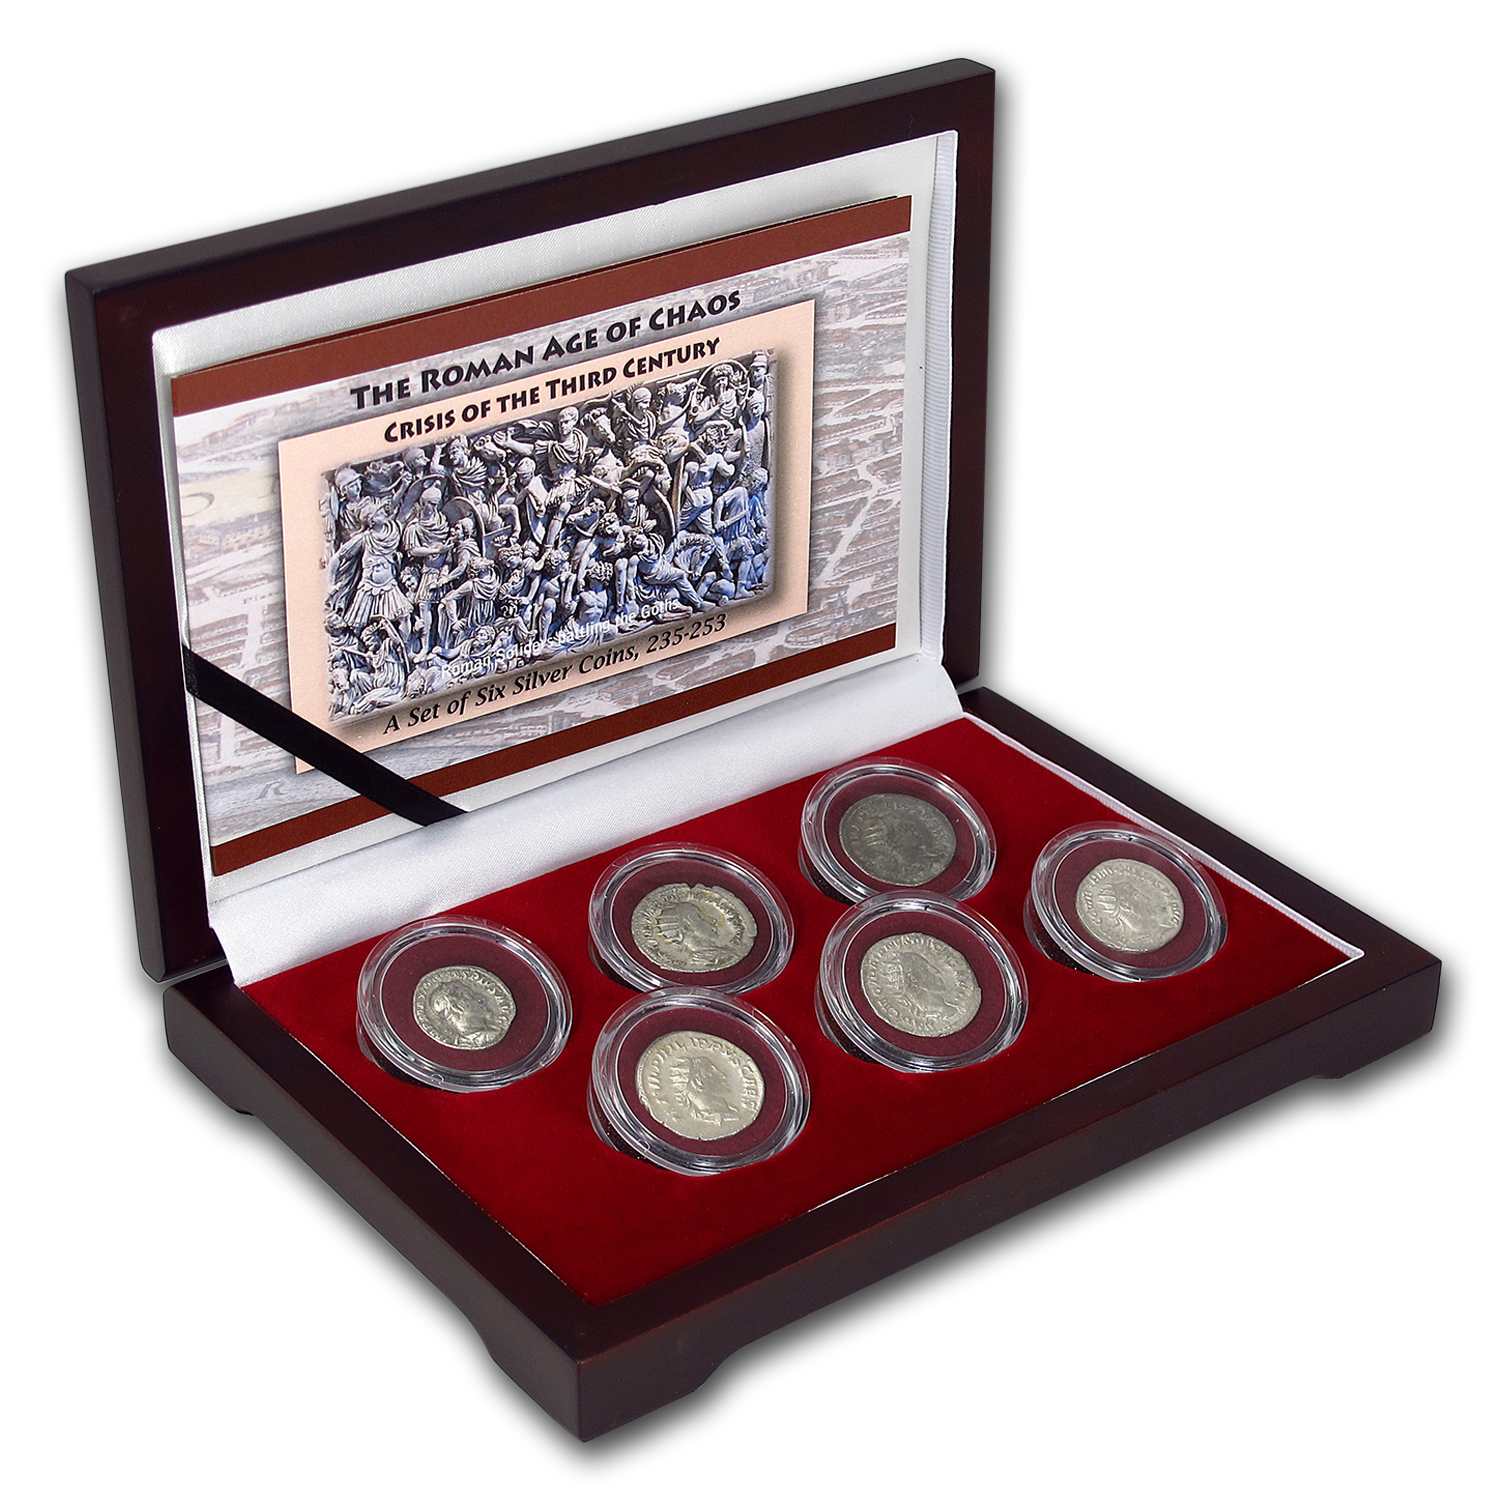 Roman Silver 6-Coin Collection the Age of Chaos